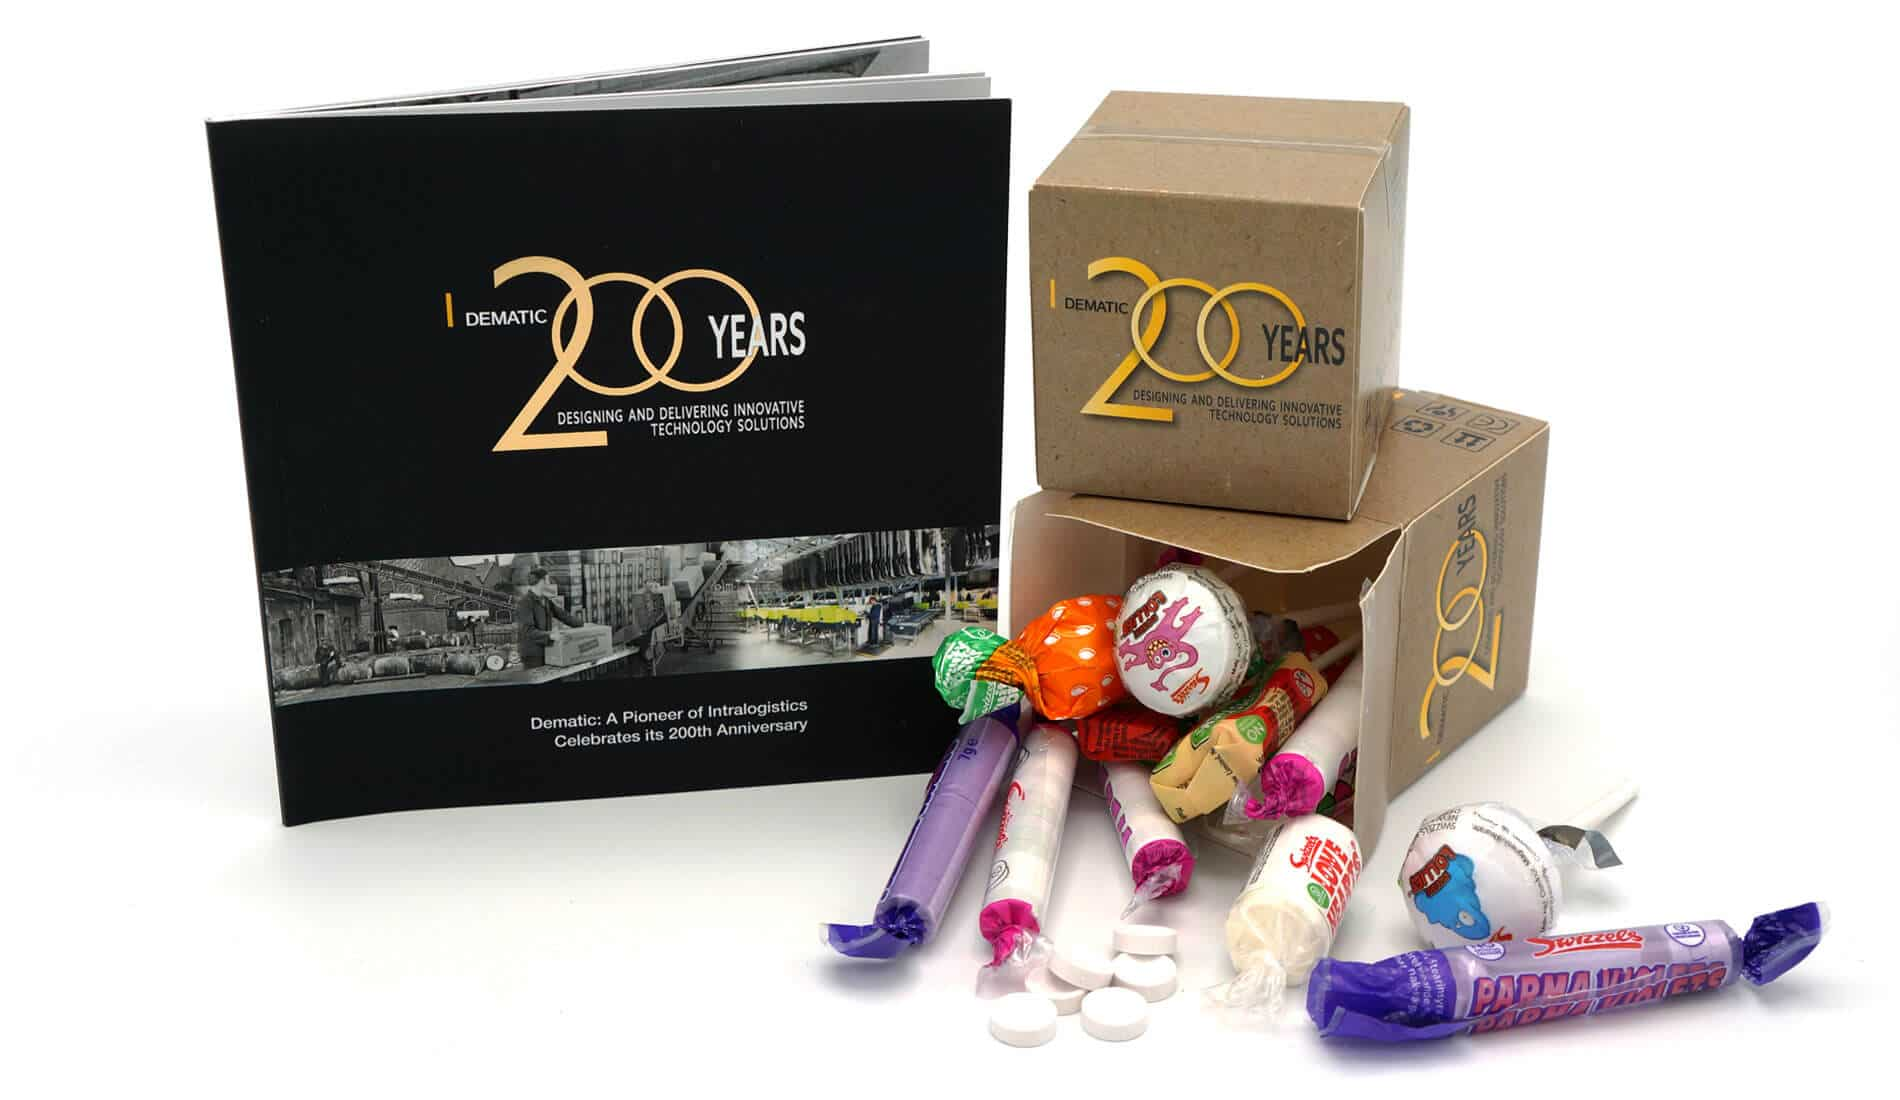 Packaging design and print design created for 200 years celebration at Dematic